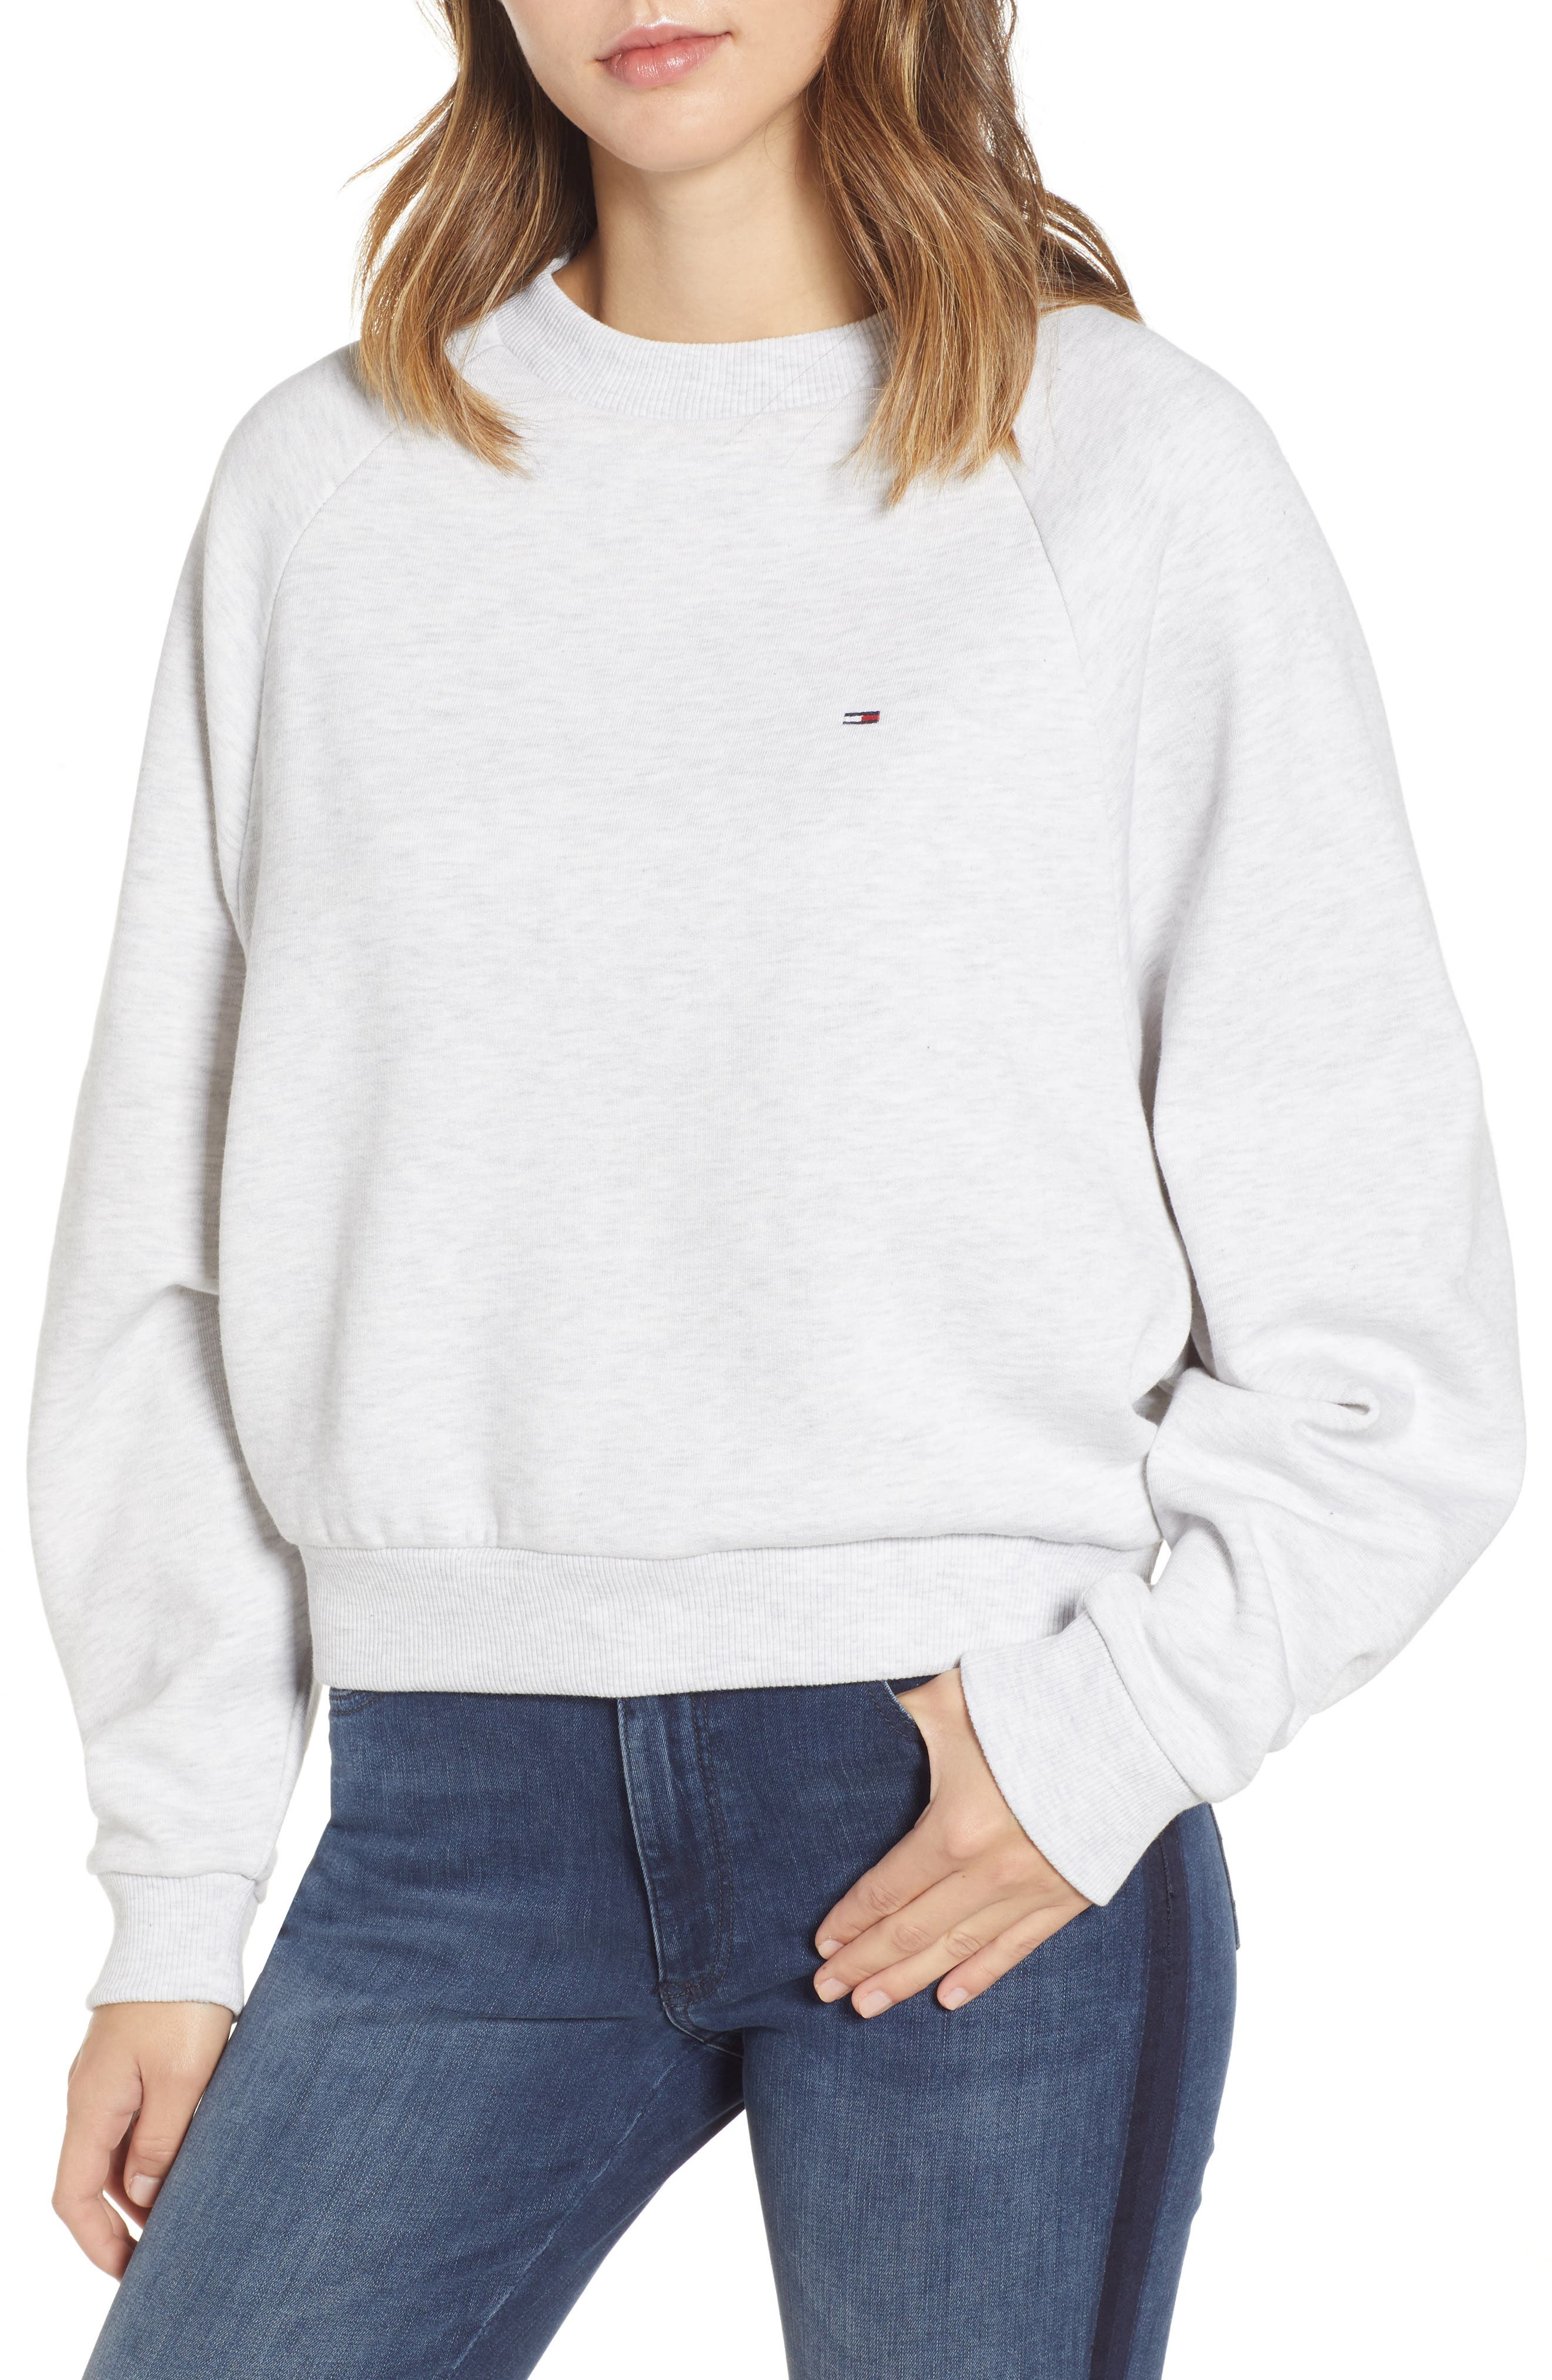 TJW Raglan Sweatshirt,                             Main thumbnail 1, color,                             PALE GREY HEATHER